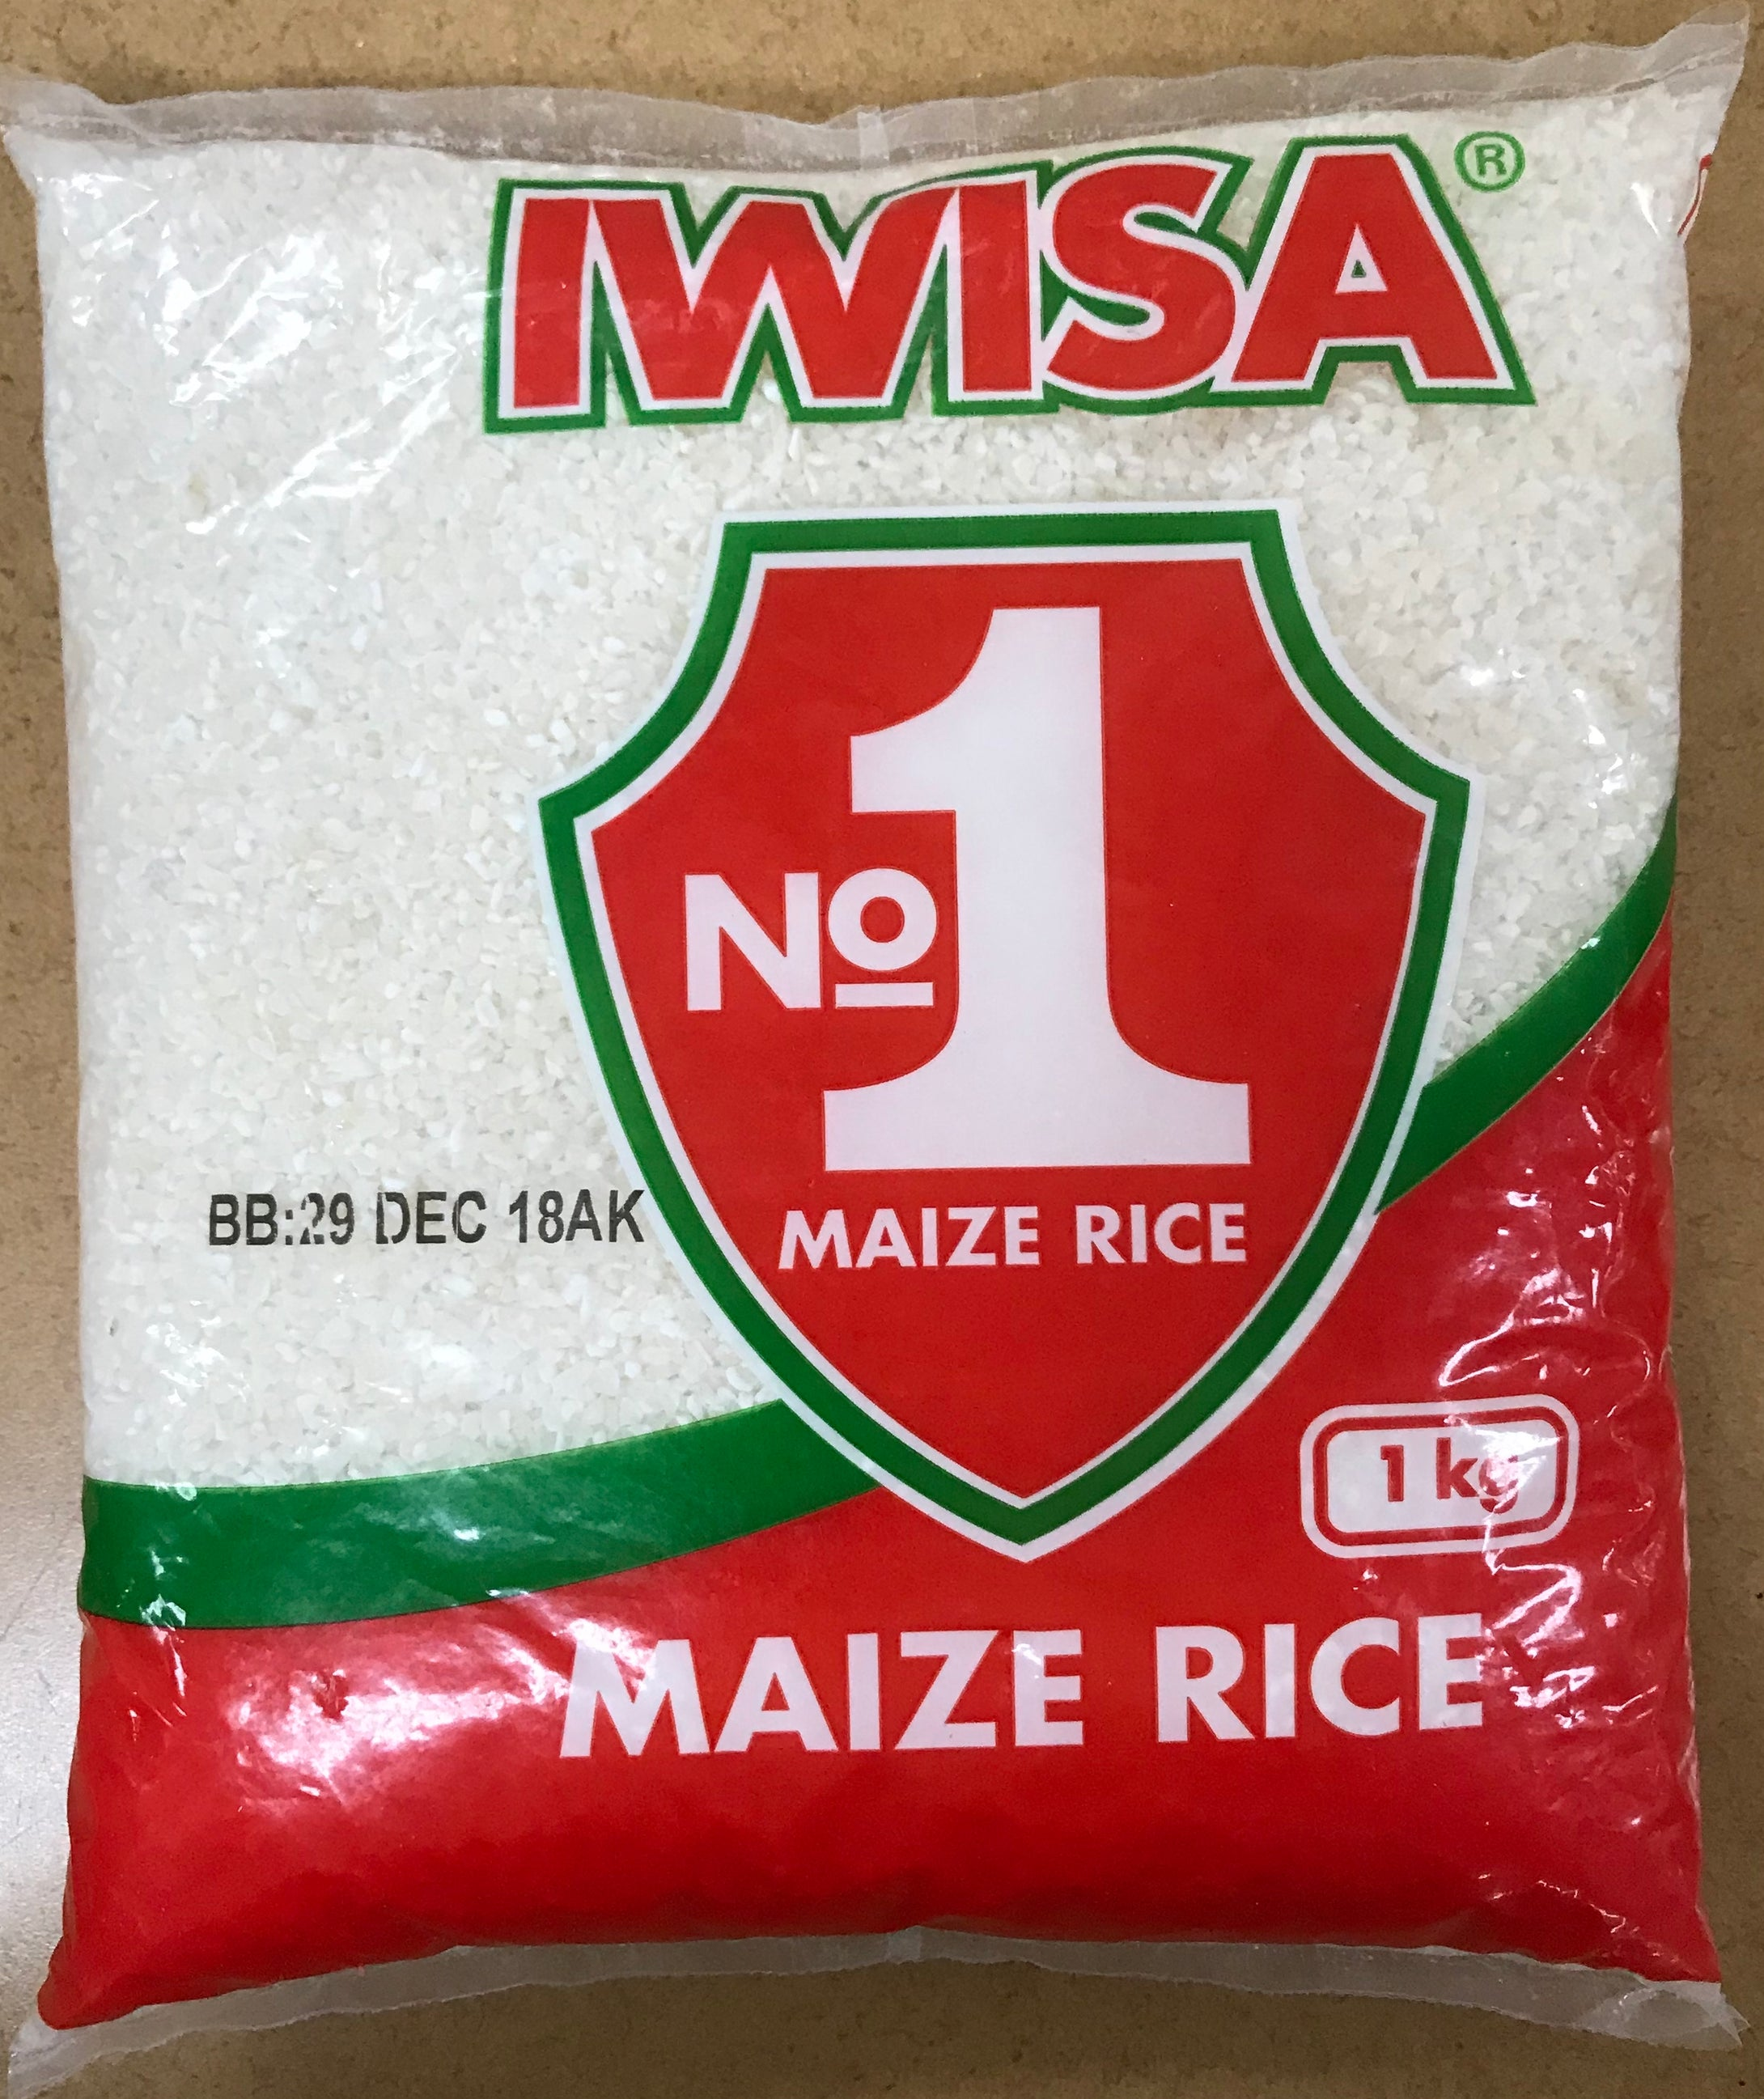 Iwisa Maize Rice 1KG